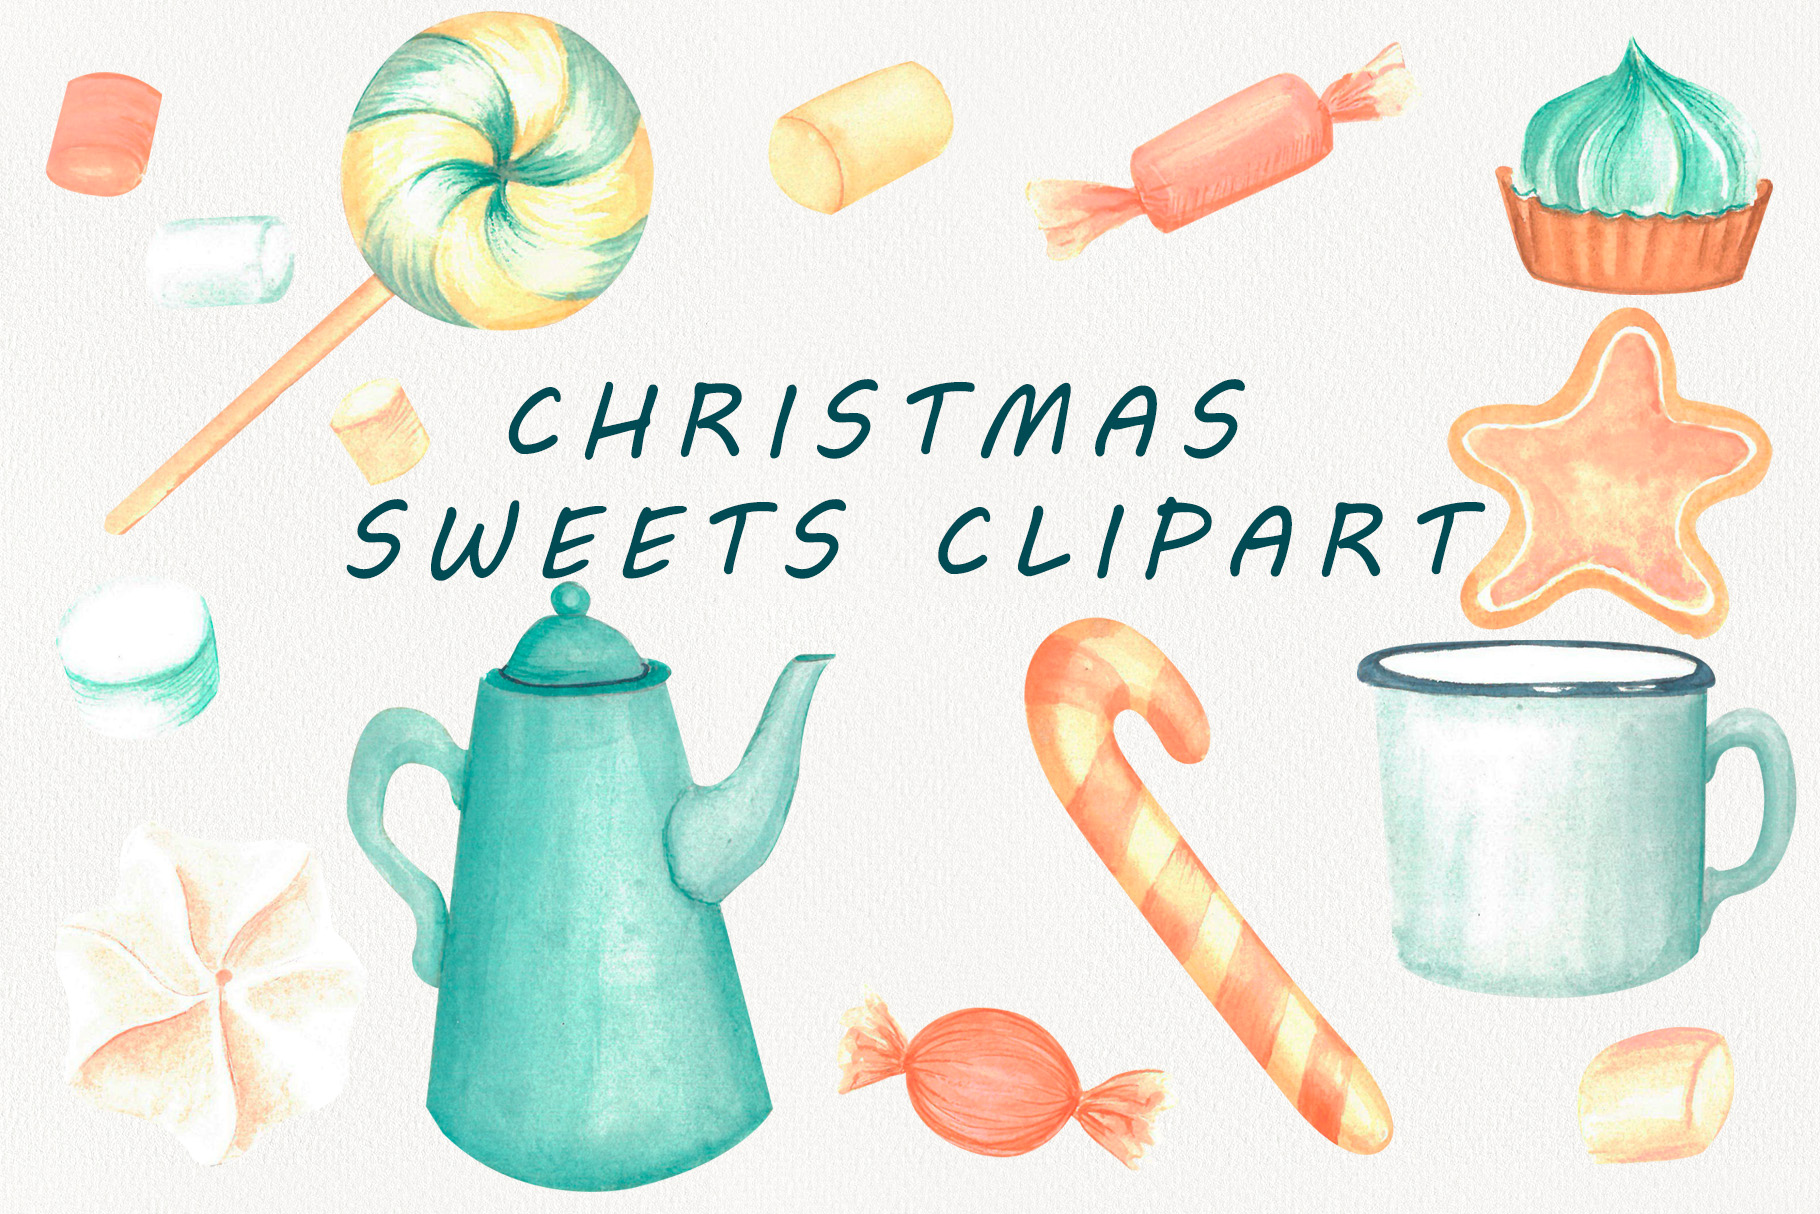 Christmas sweets watercolor clipart example image 4